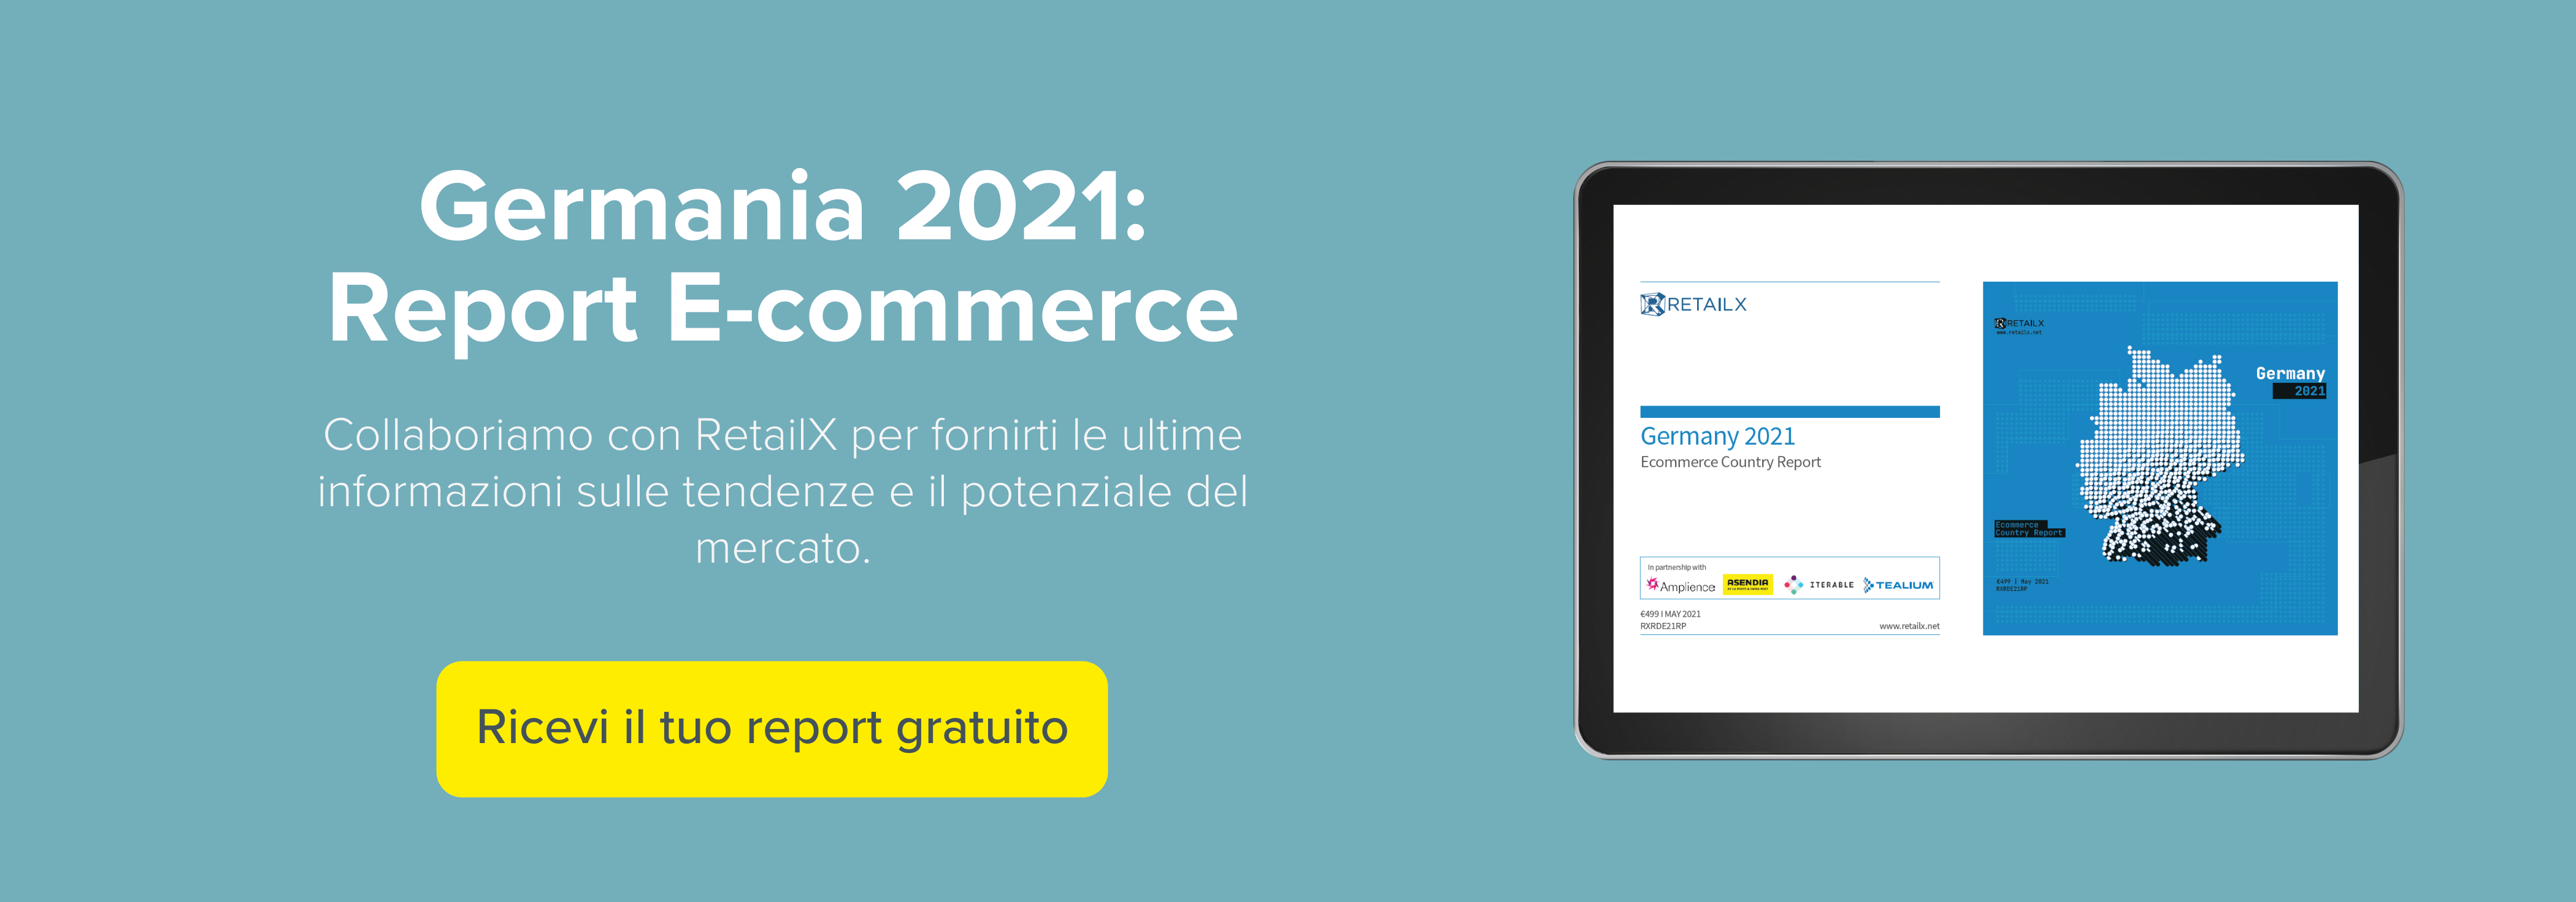 Nuova call-to-action